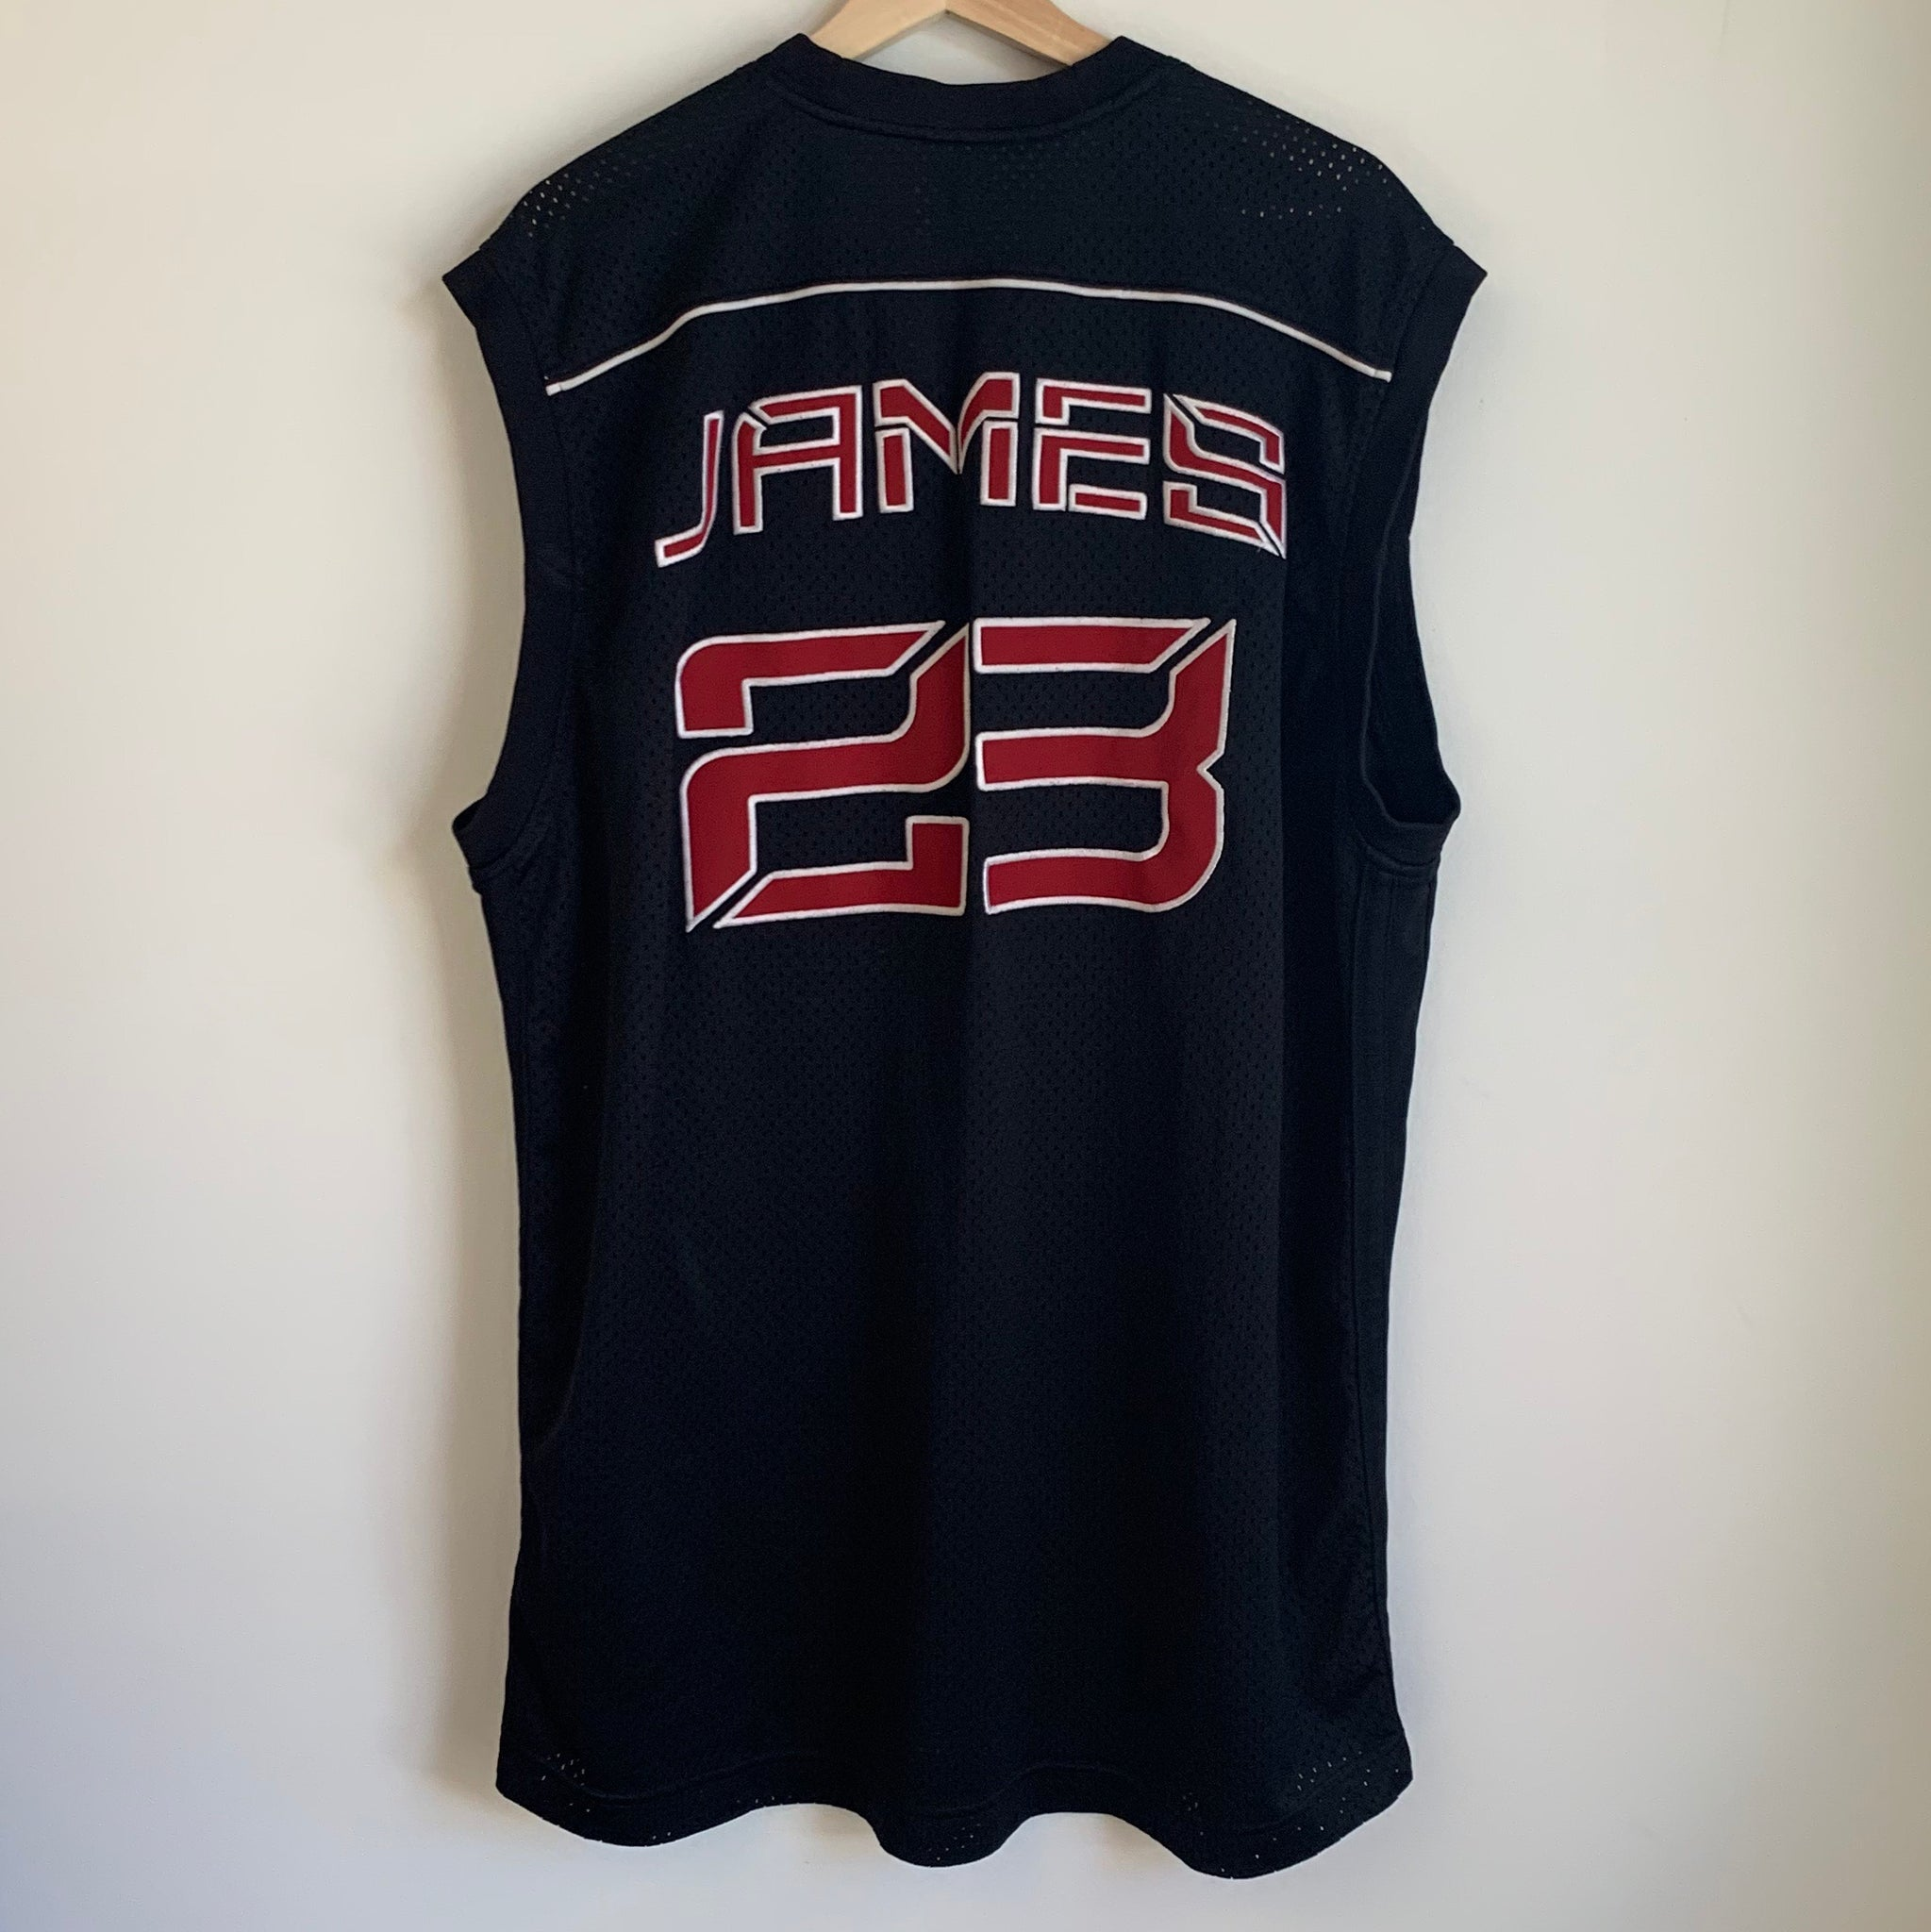 meet ce5f4 f0ed7 Nike Air LeBron James King Black Basketball Jersey